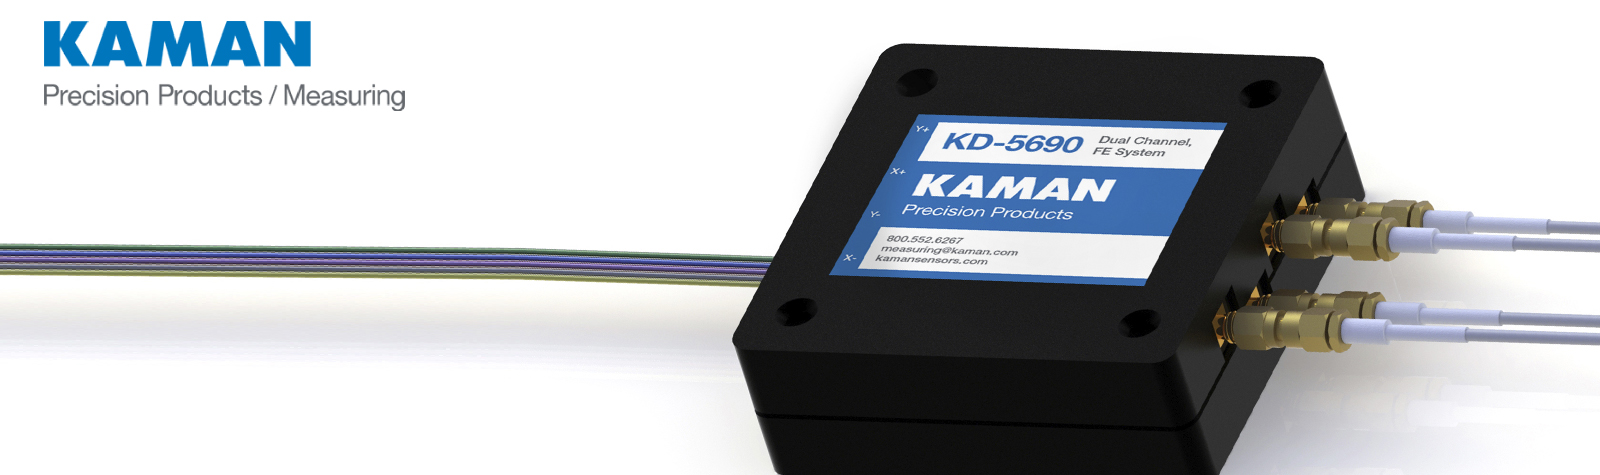 Kaman Precision Products introduceert hun nieuwste Digital Differential Impedance Transducer